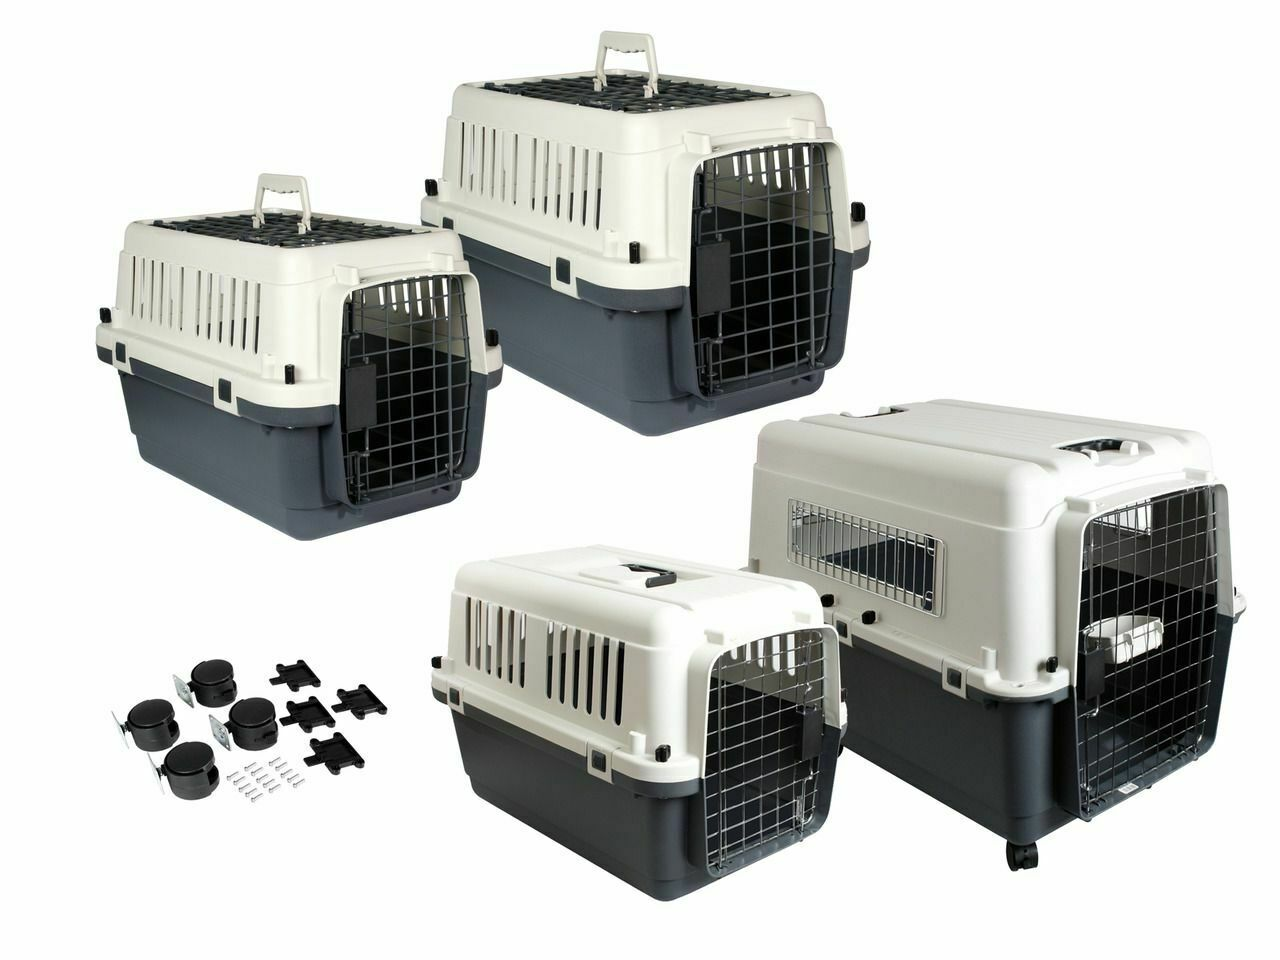 Flugzeugbox Nomad Hundetransportbox Transportbox Hundebox Flugbox Hund Transport